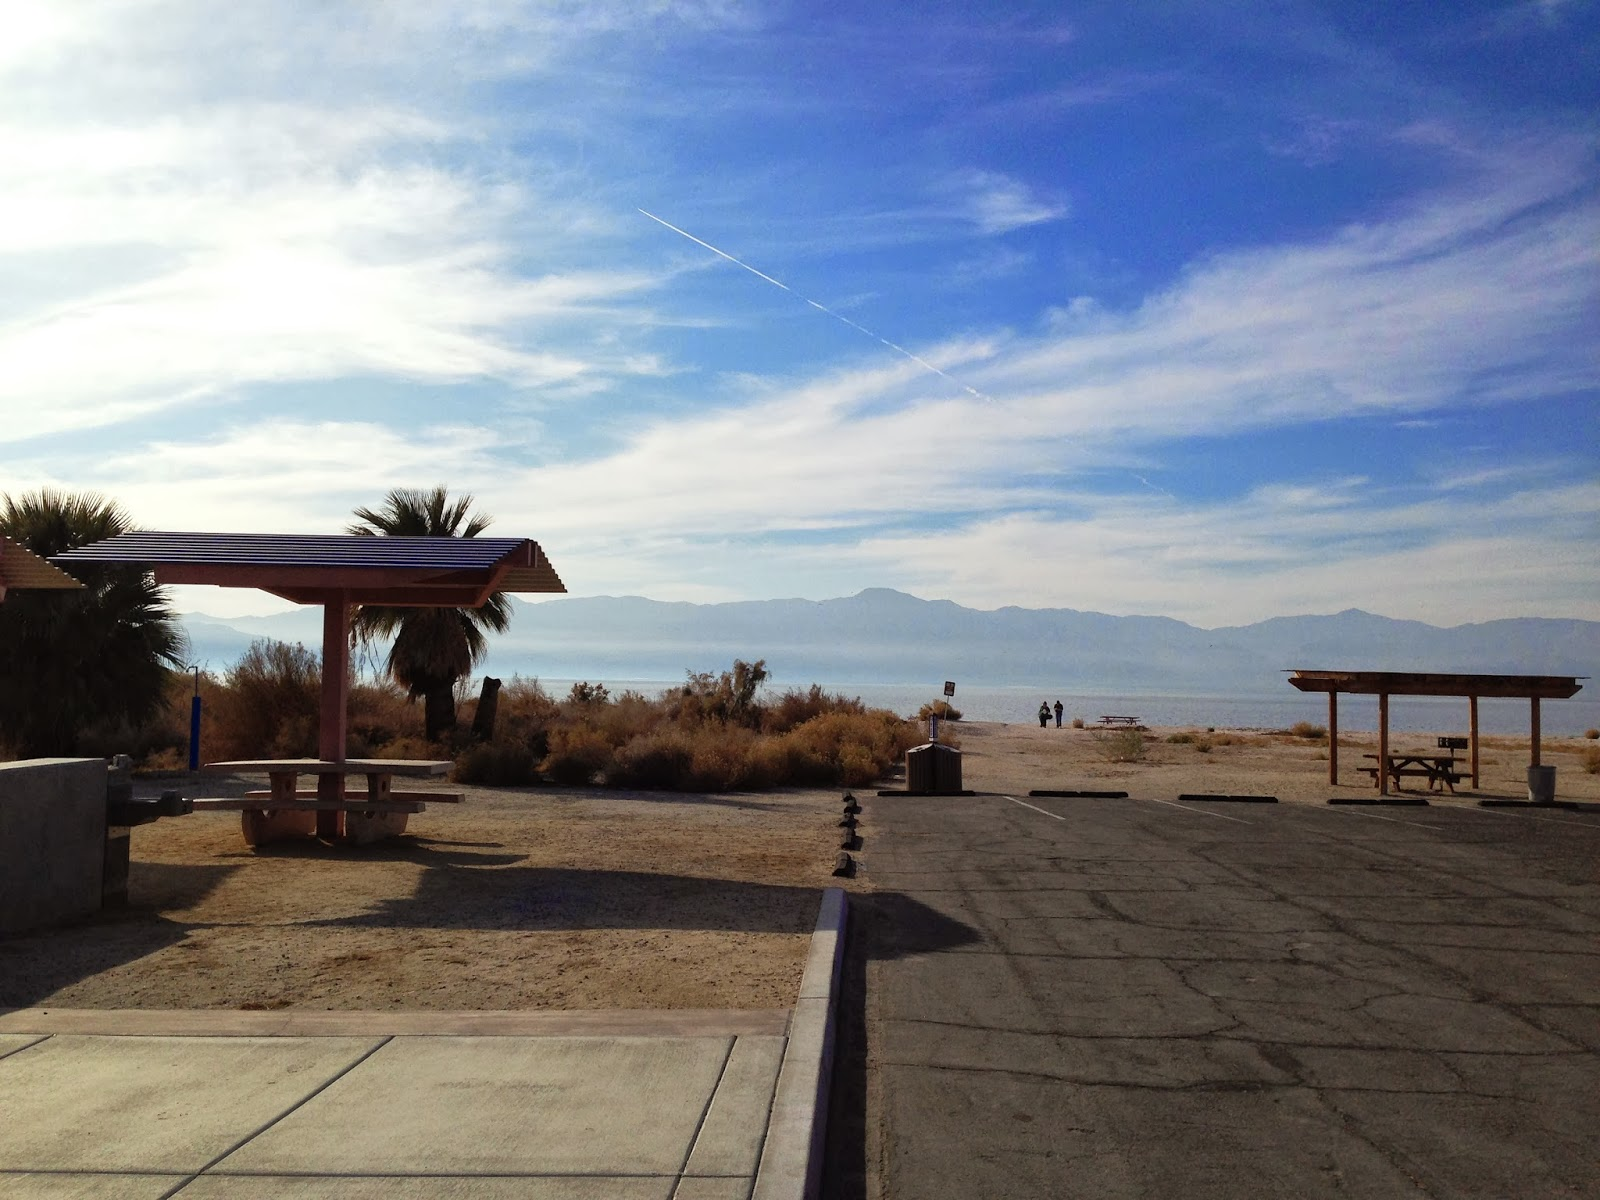 Stargazing at Salton Sea to celebrate Latino Conservation Week